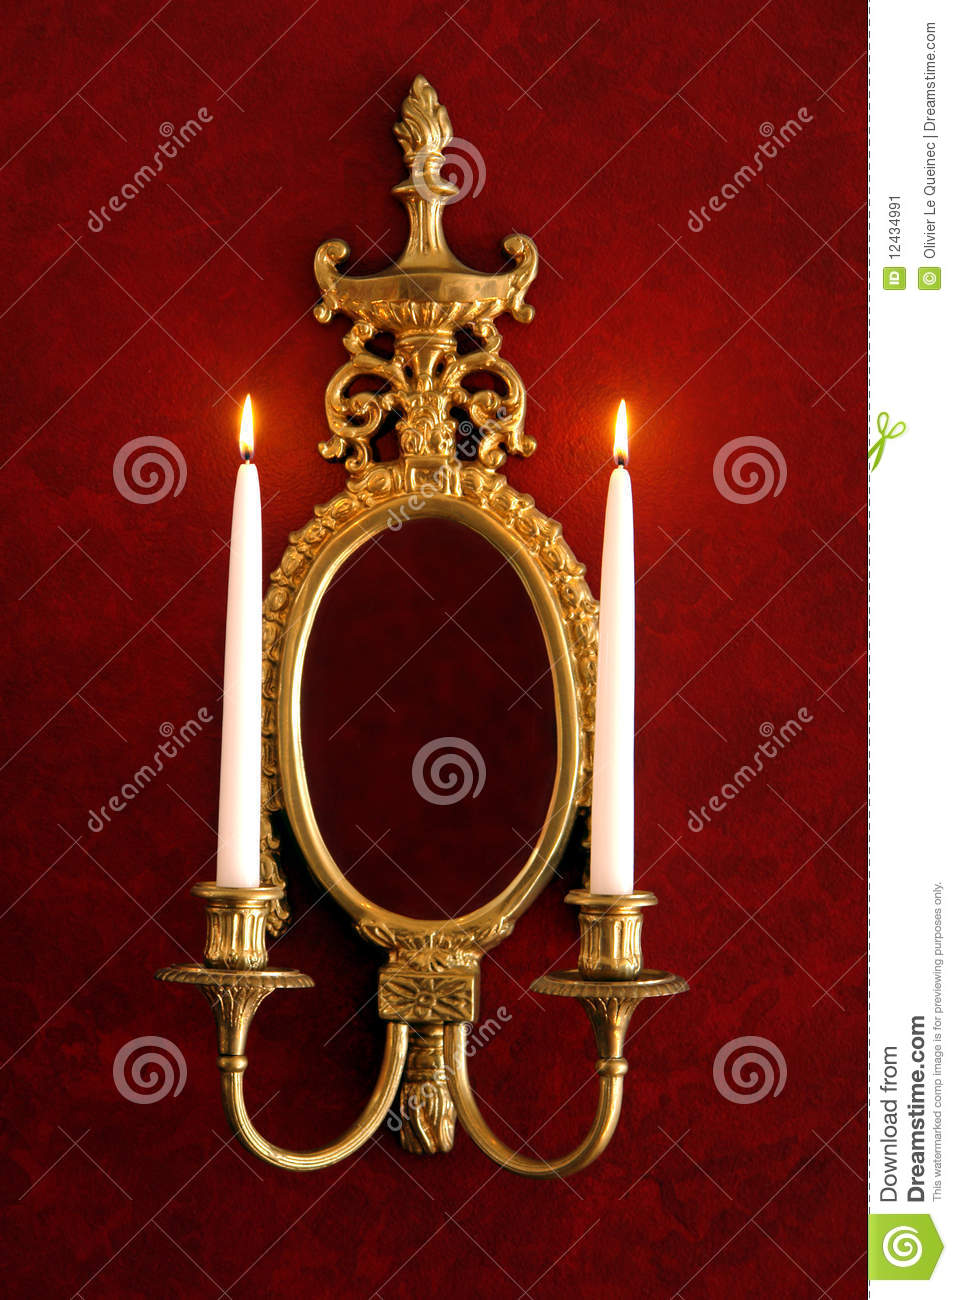 Antique Wall Mirror Sconce With Burning Candles Stock